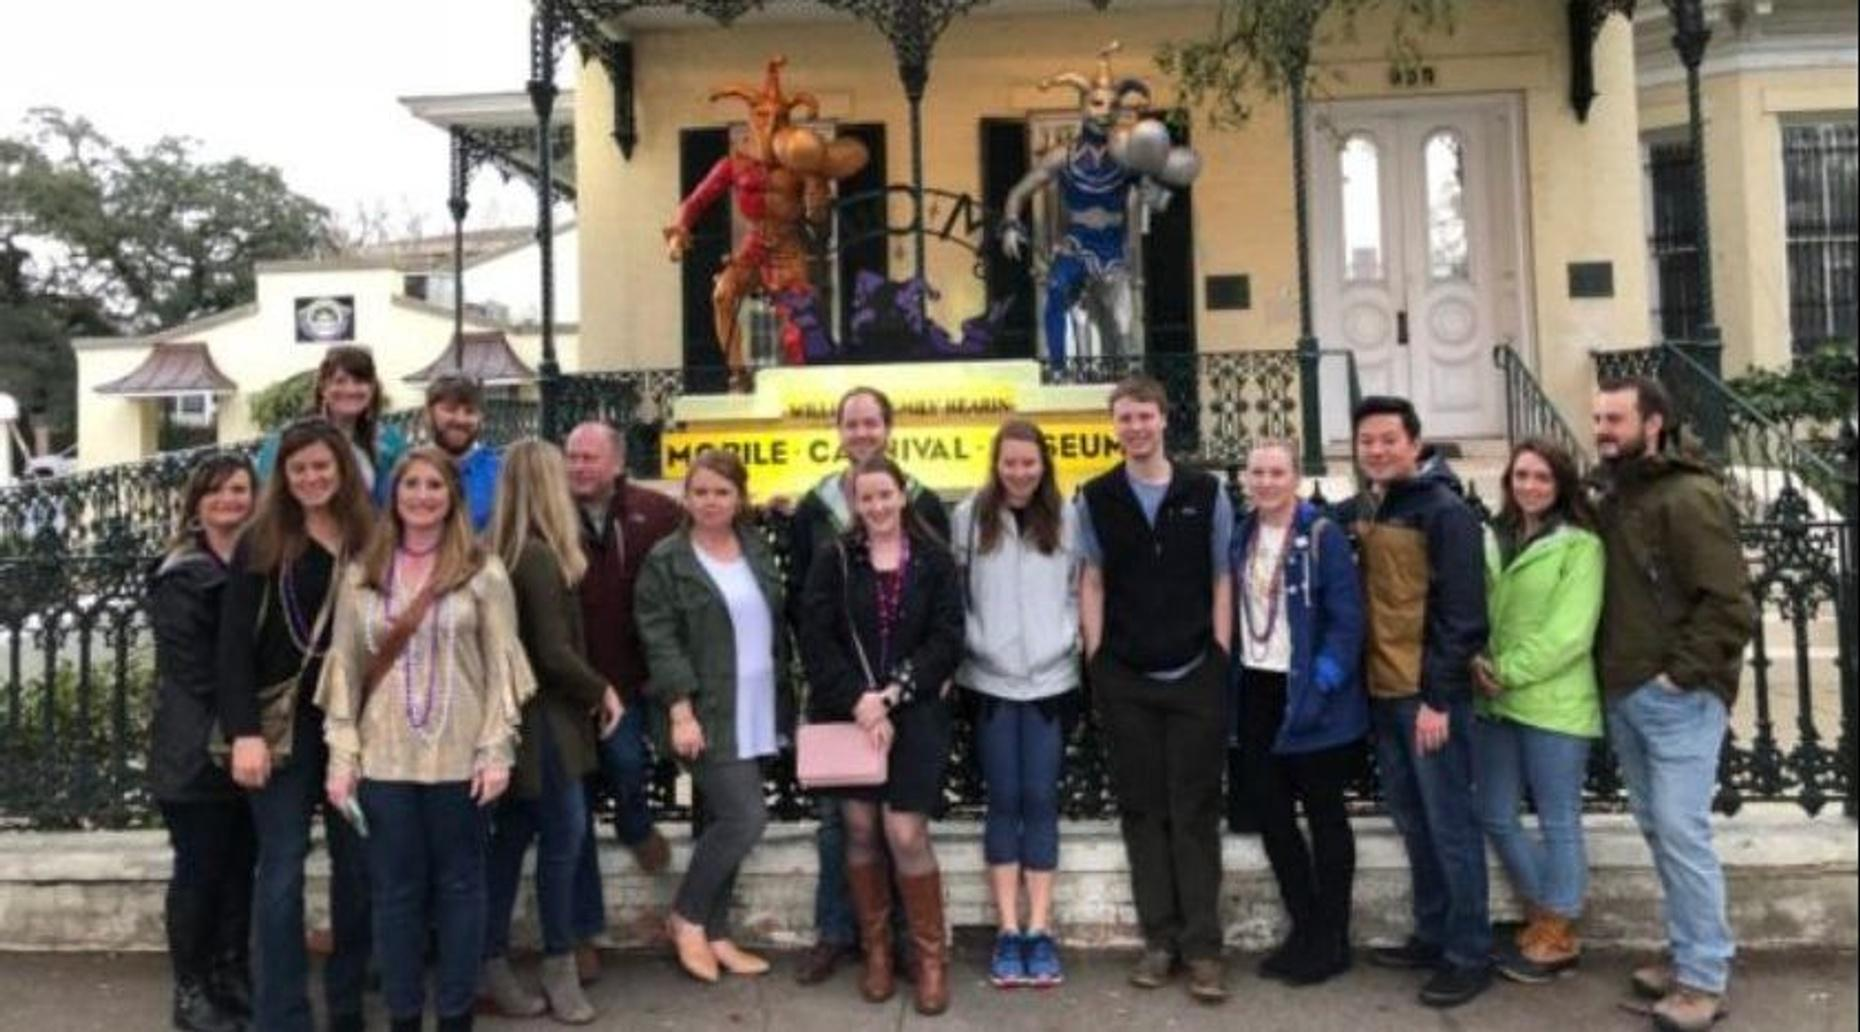 Mardi Gras Carnival Float and Food Tour in Mobile